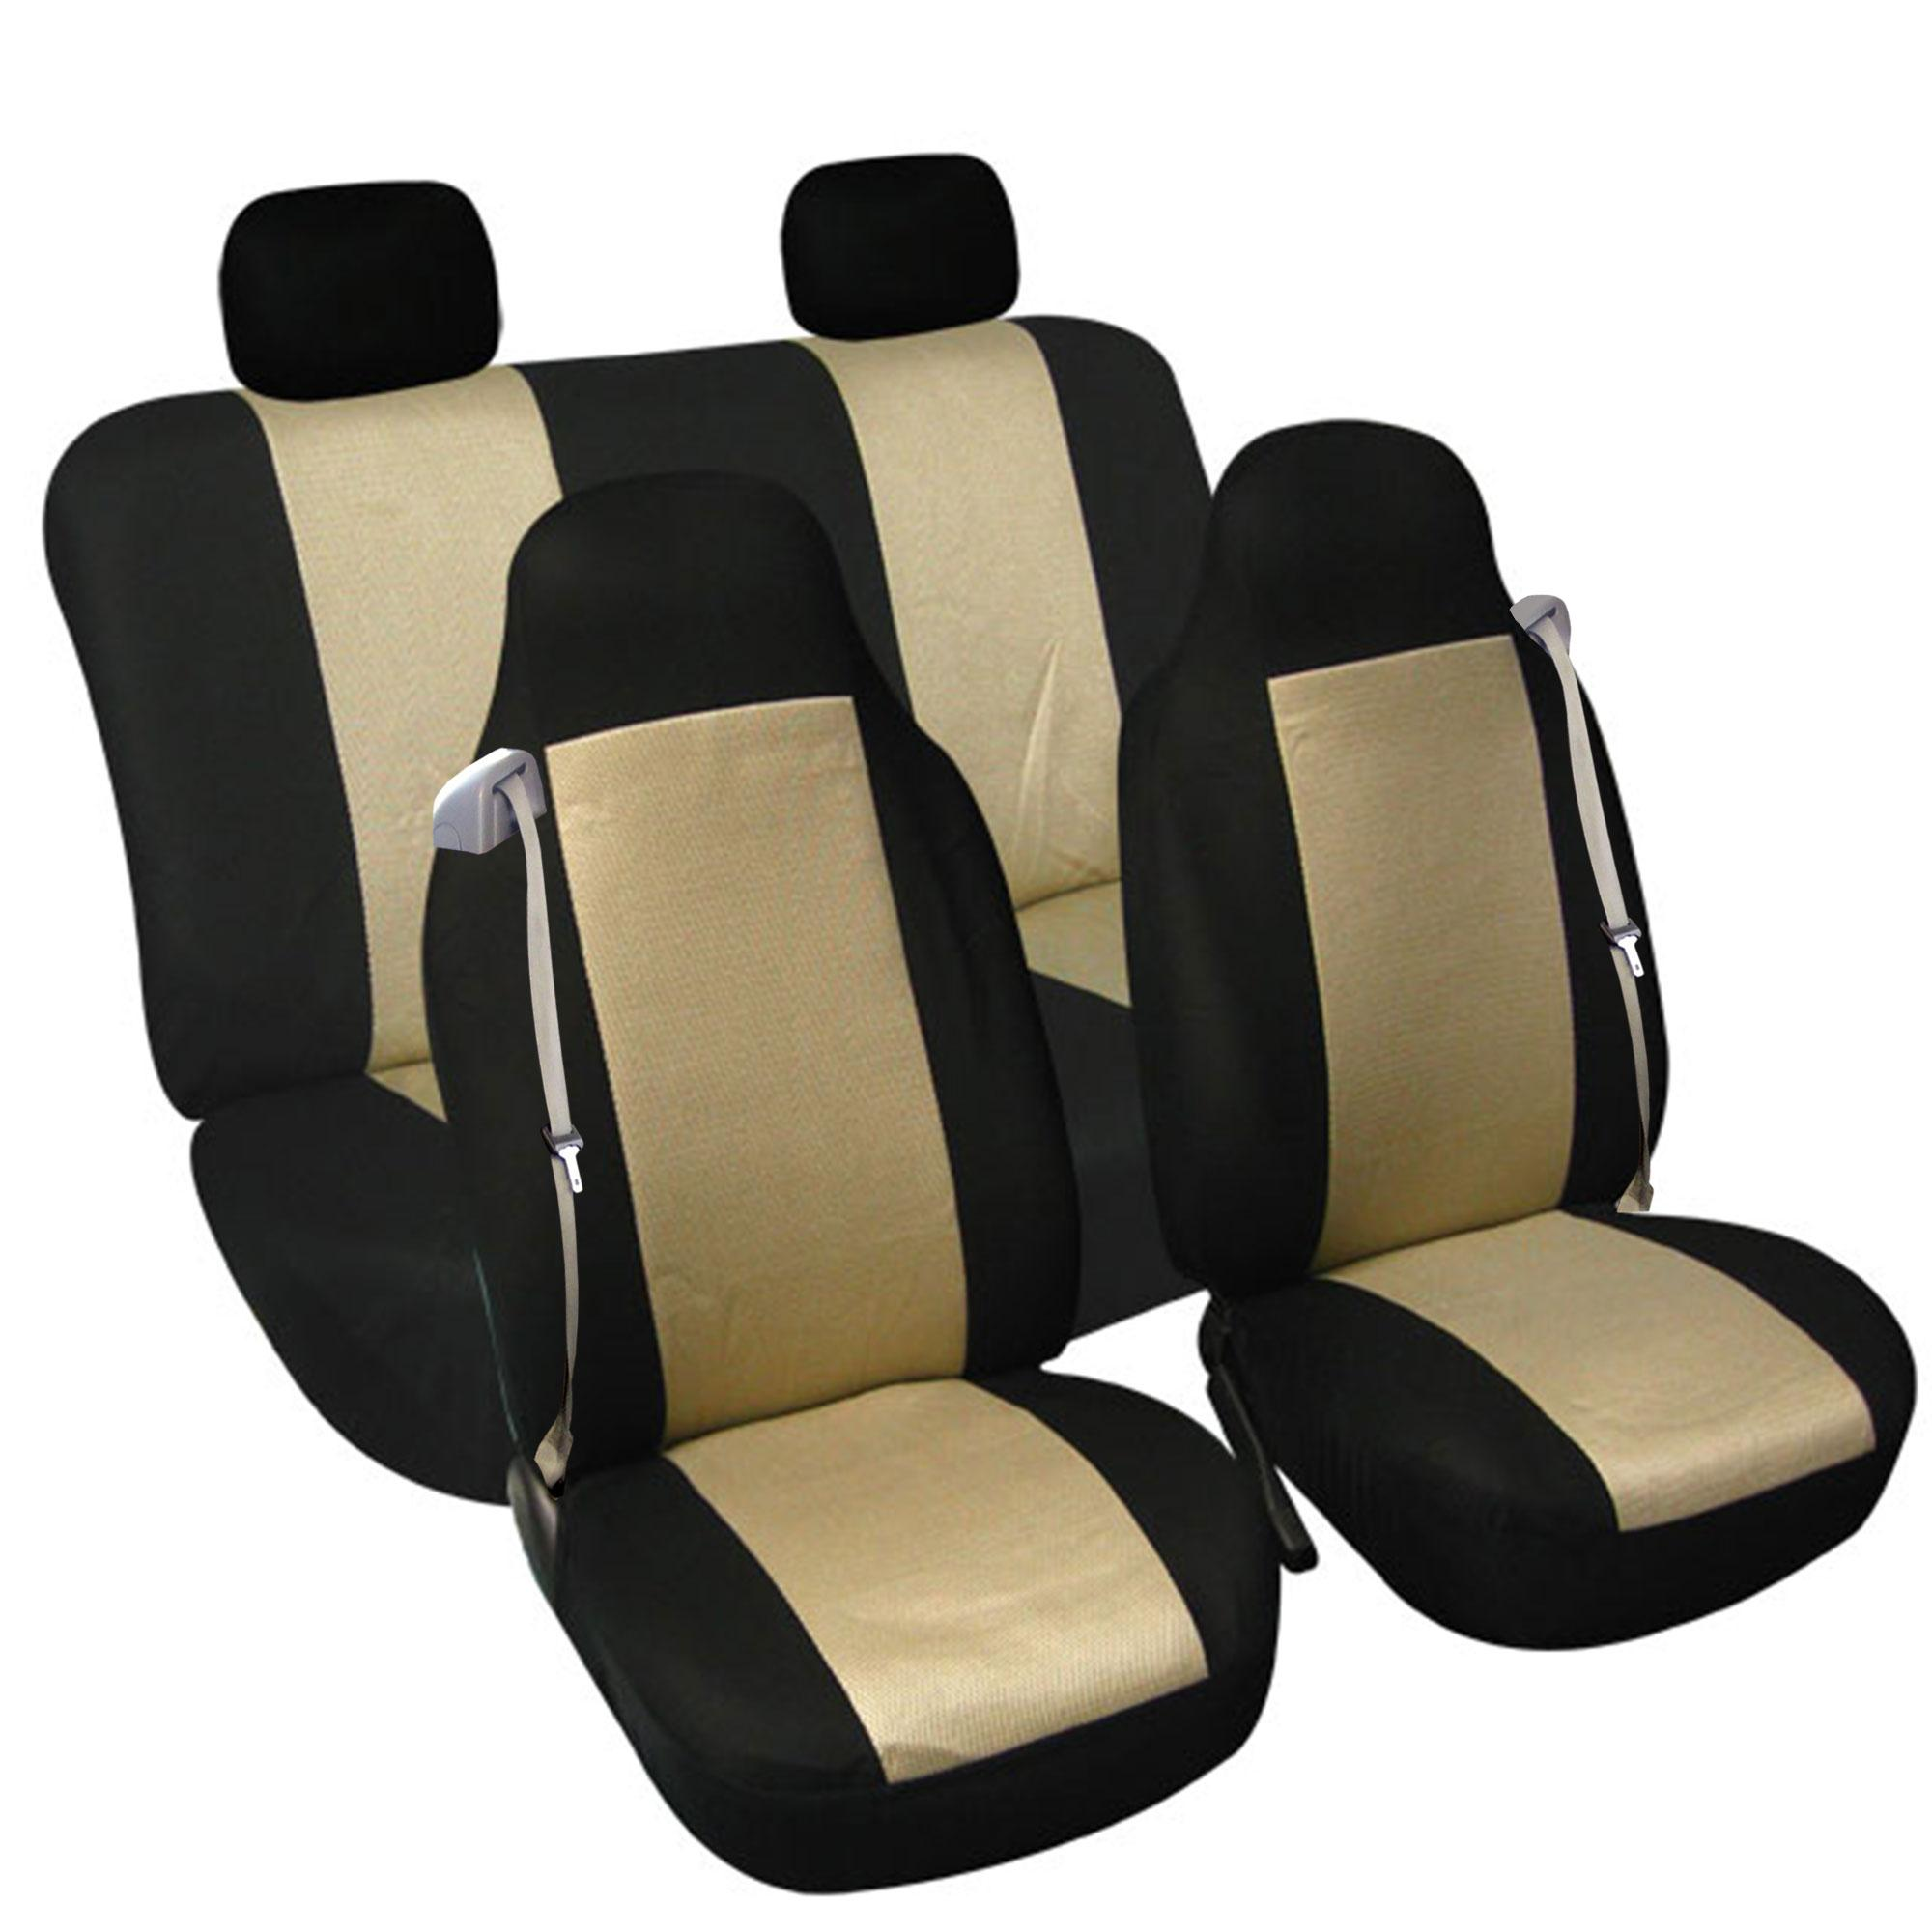 FH Group FB302GRAY102 Gray Classic Cloth Built In Seatbelt